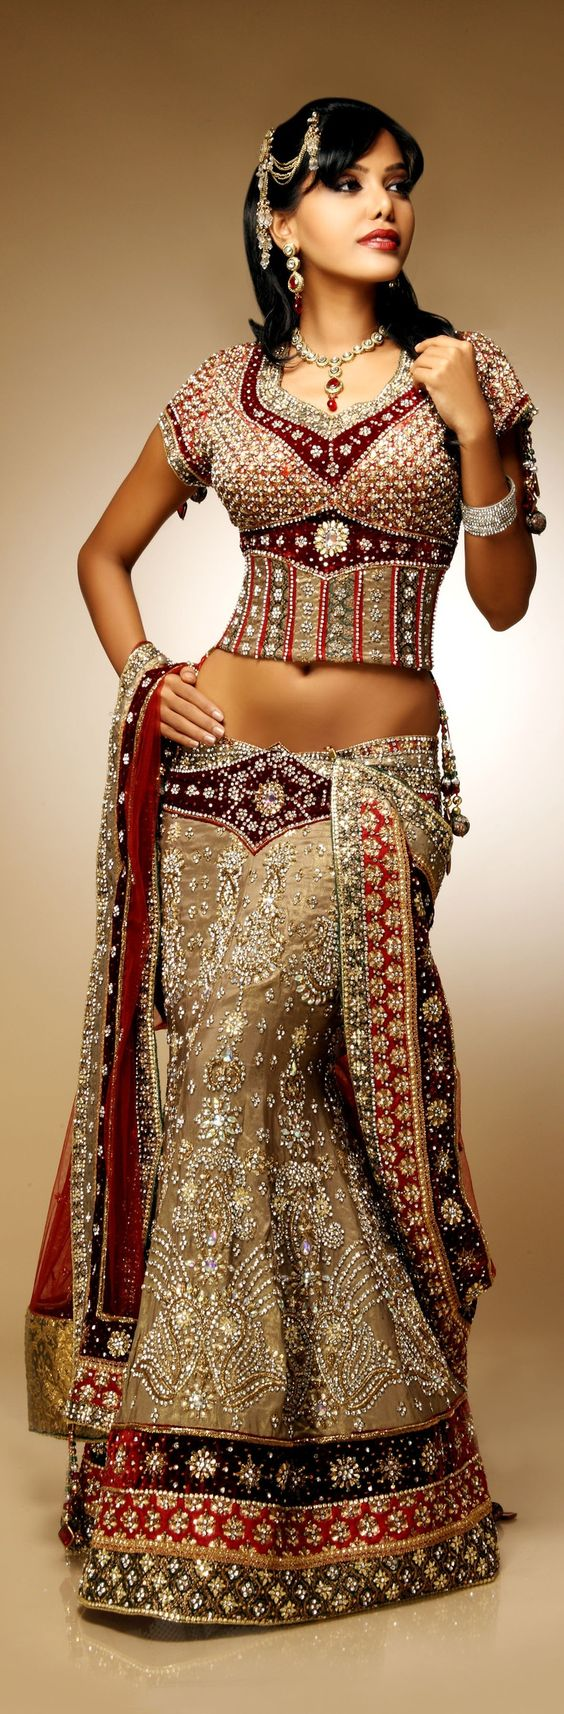 Indian weddings indian and indian wedding dresses on for Best wedding dresses for dancing